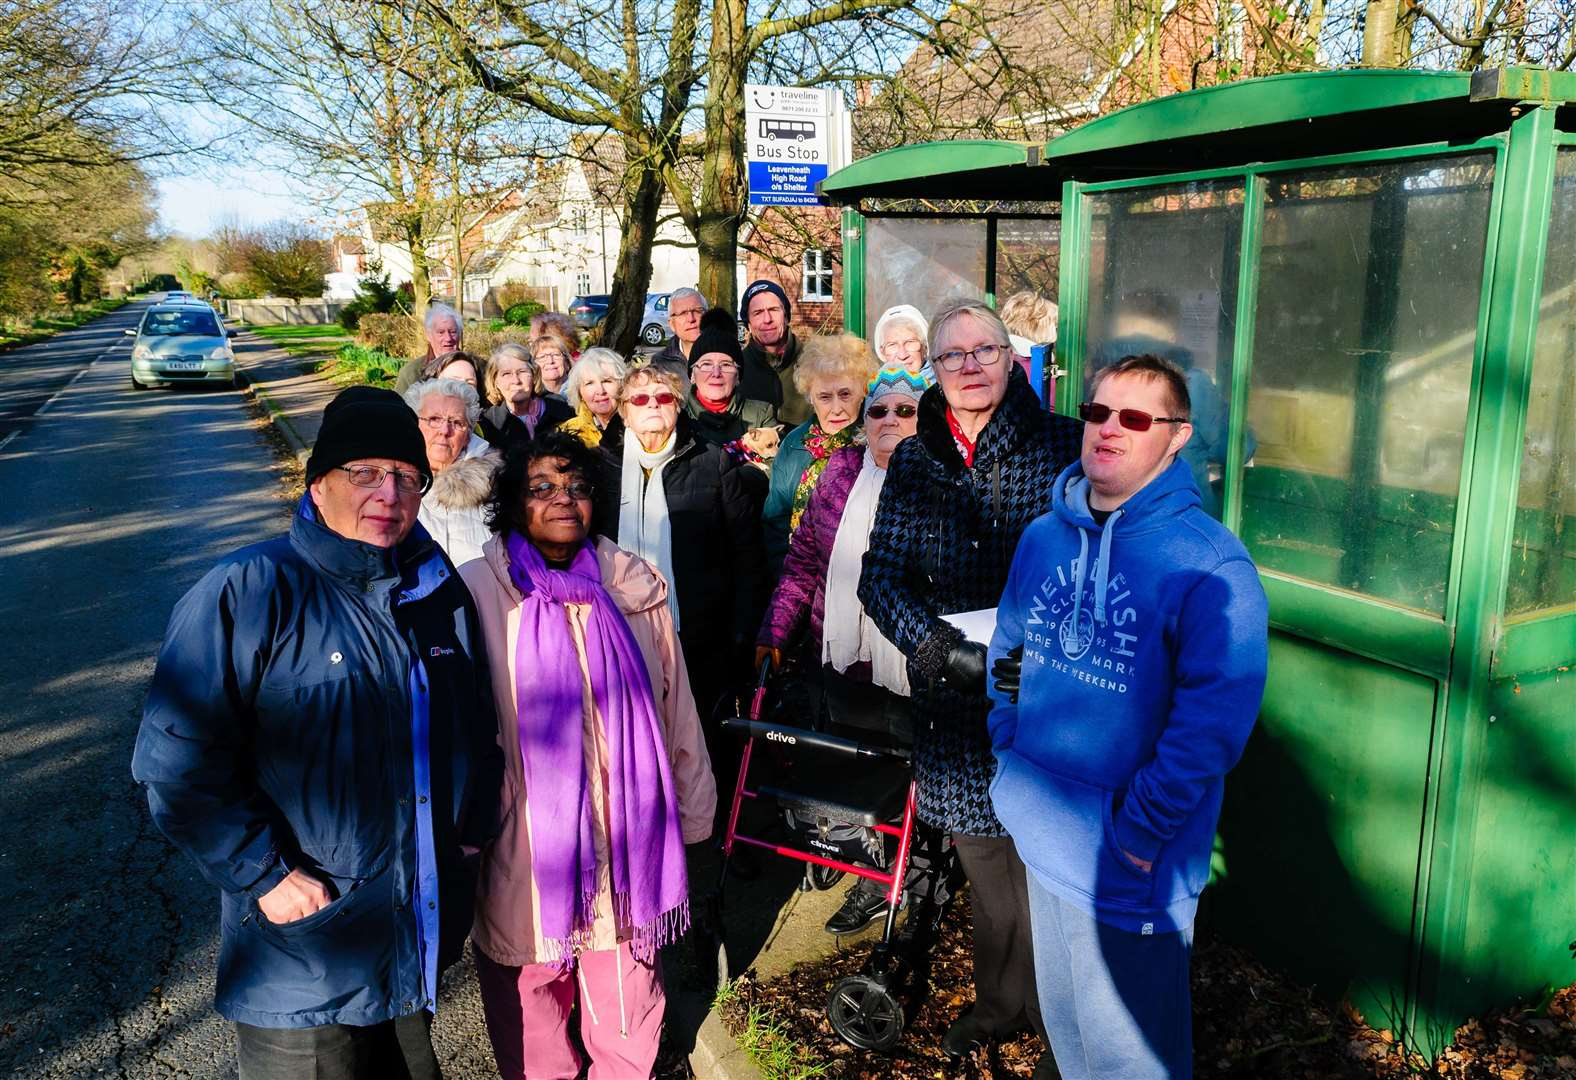 Villagers voice frustration at planned reduction to Chambers 84 bus to and from Sudbury